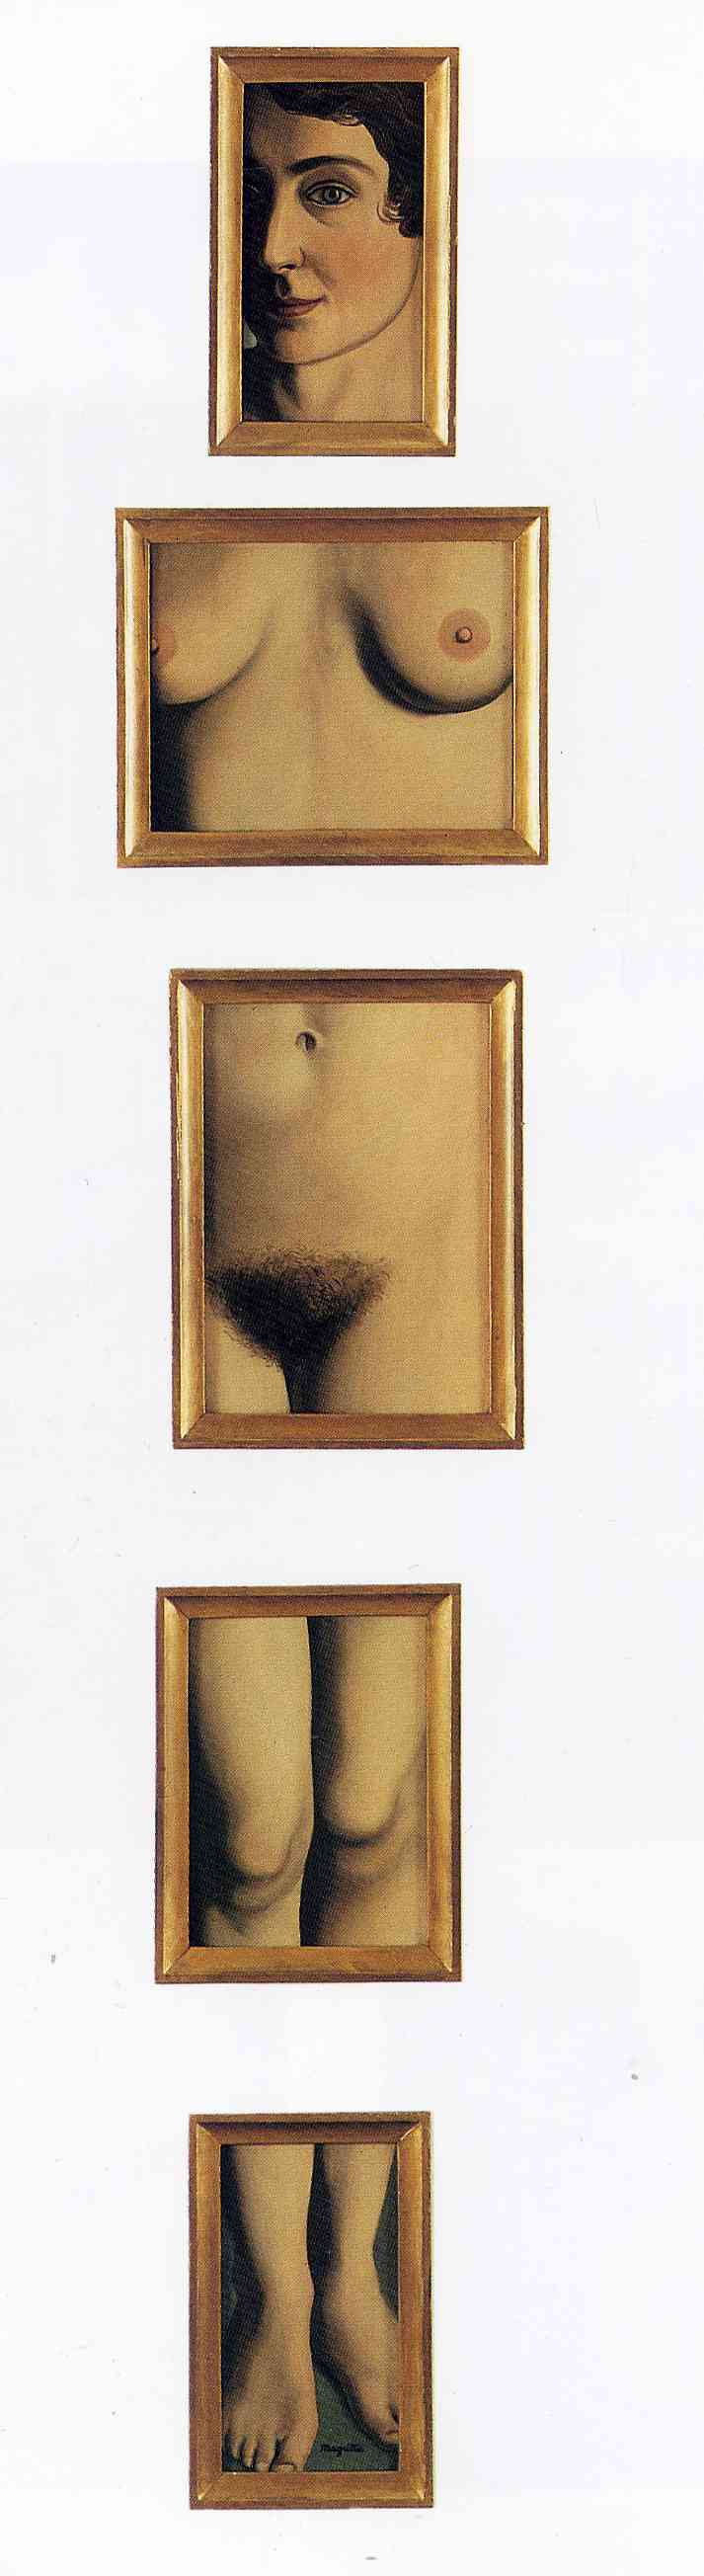 René Magritte. Eternal proof